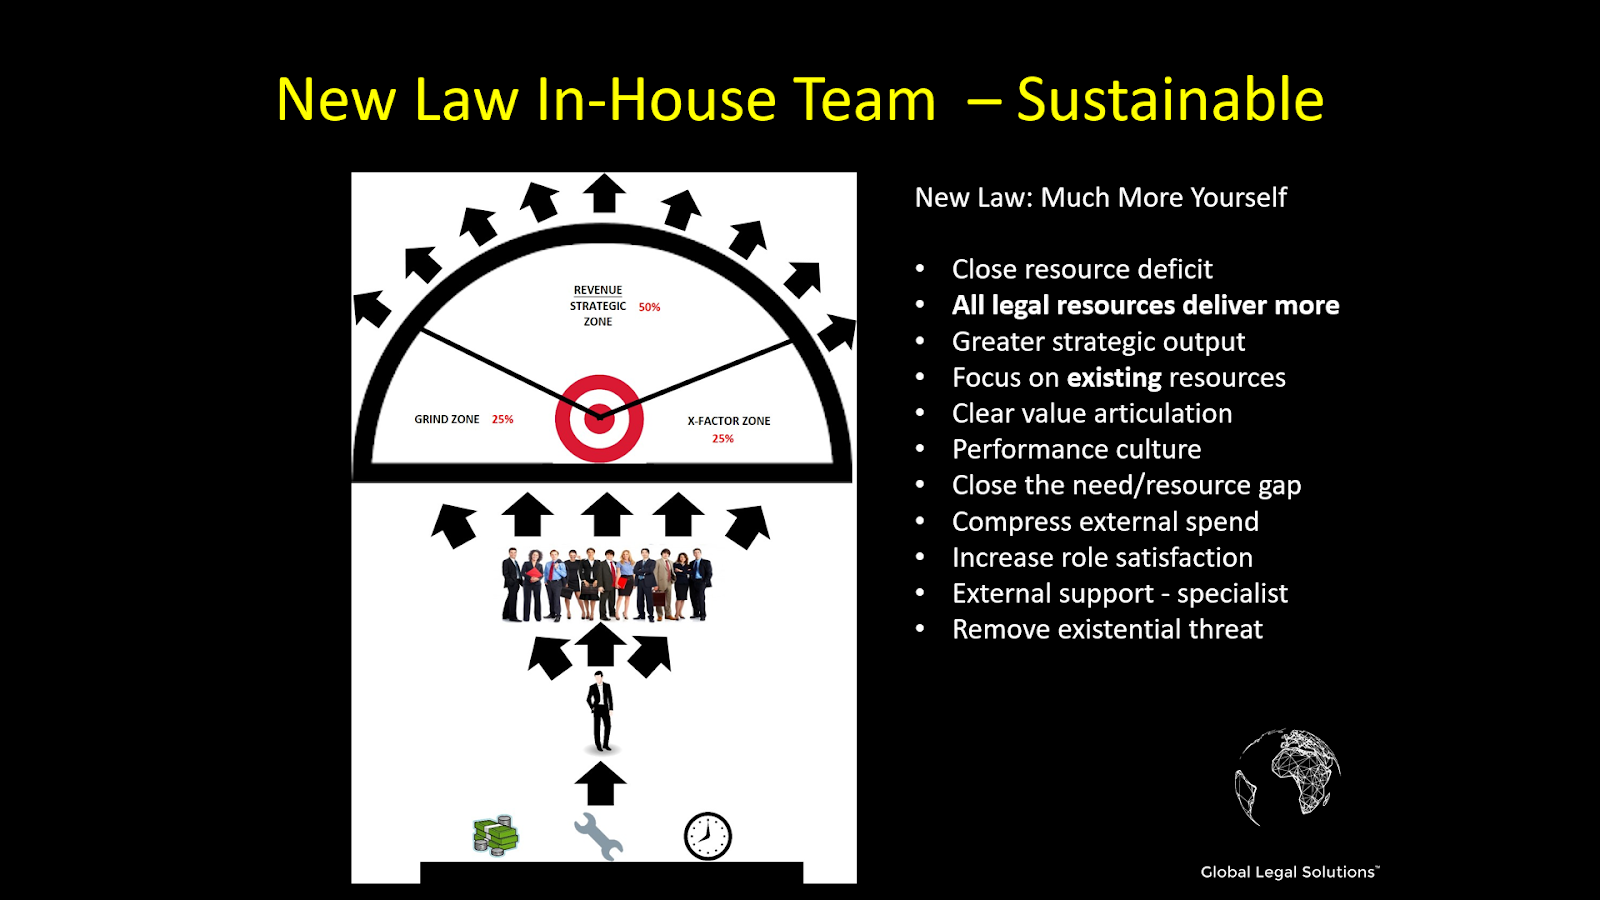 New law for in-house legal teams